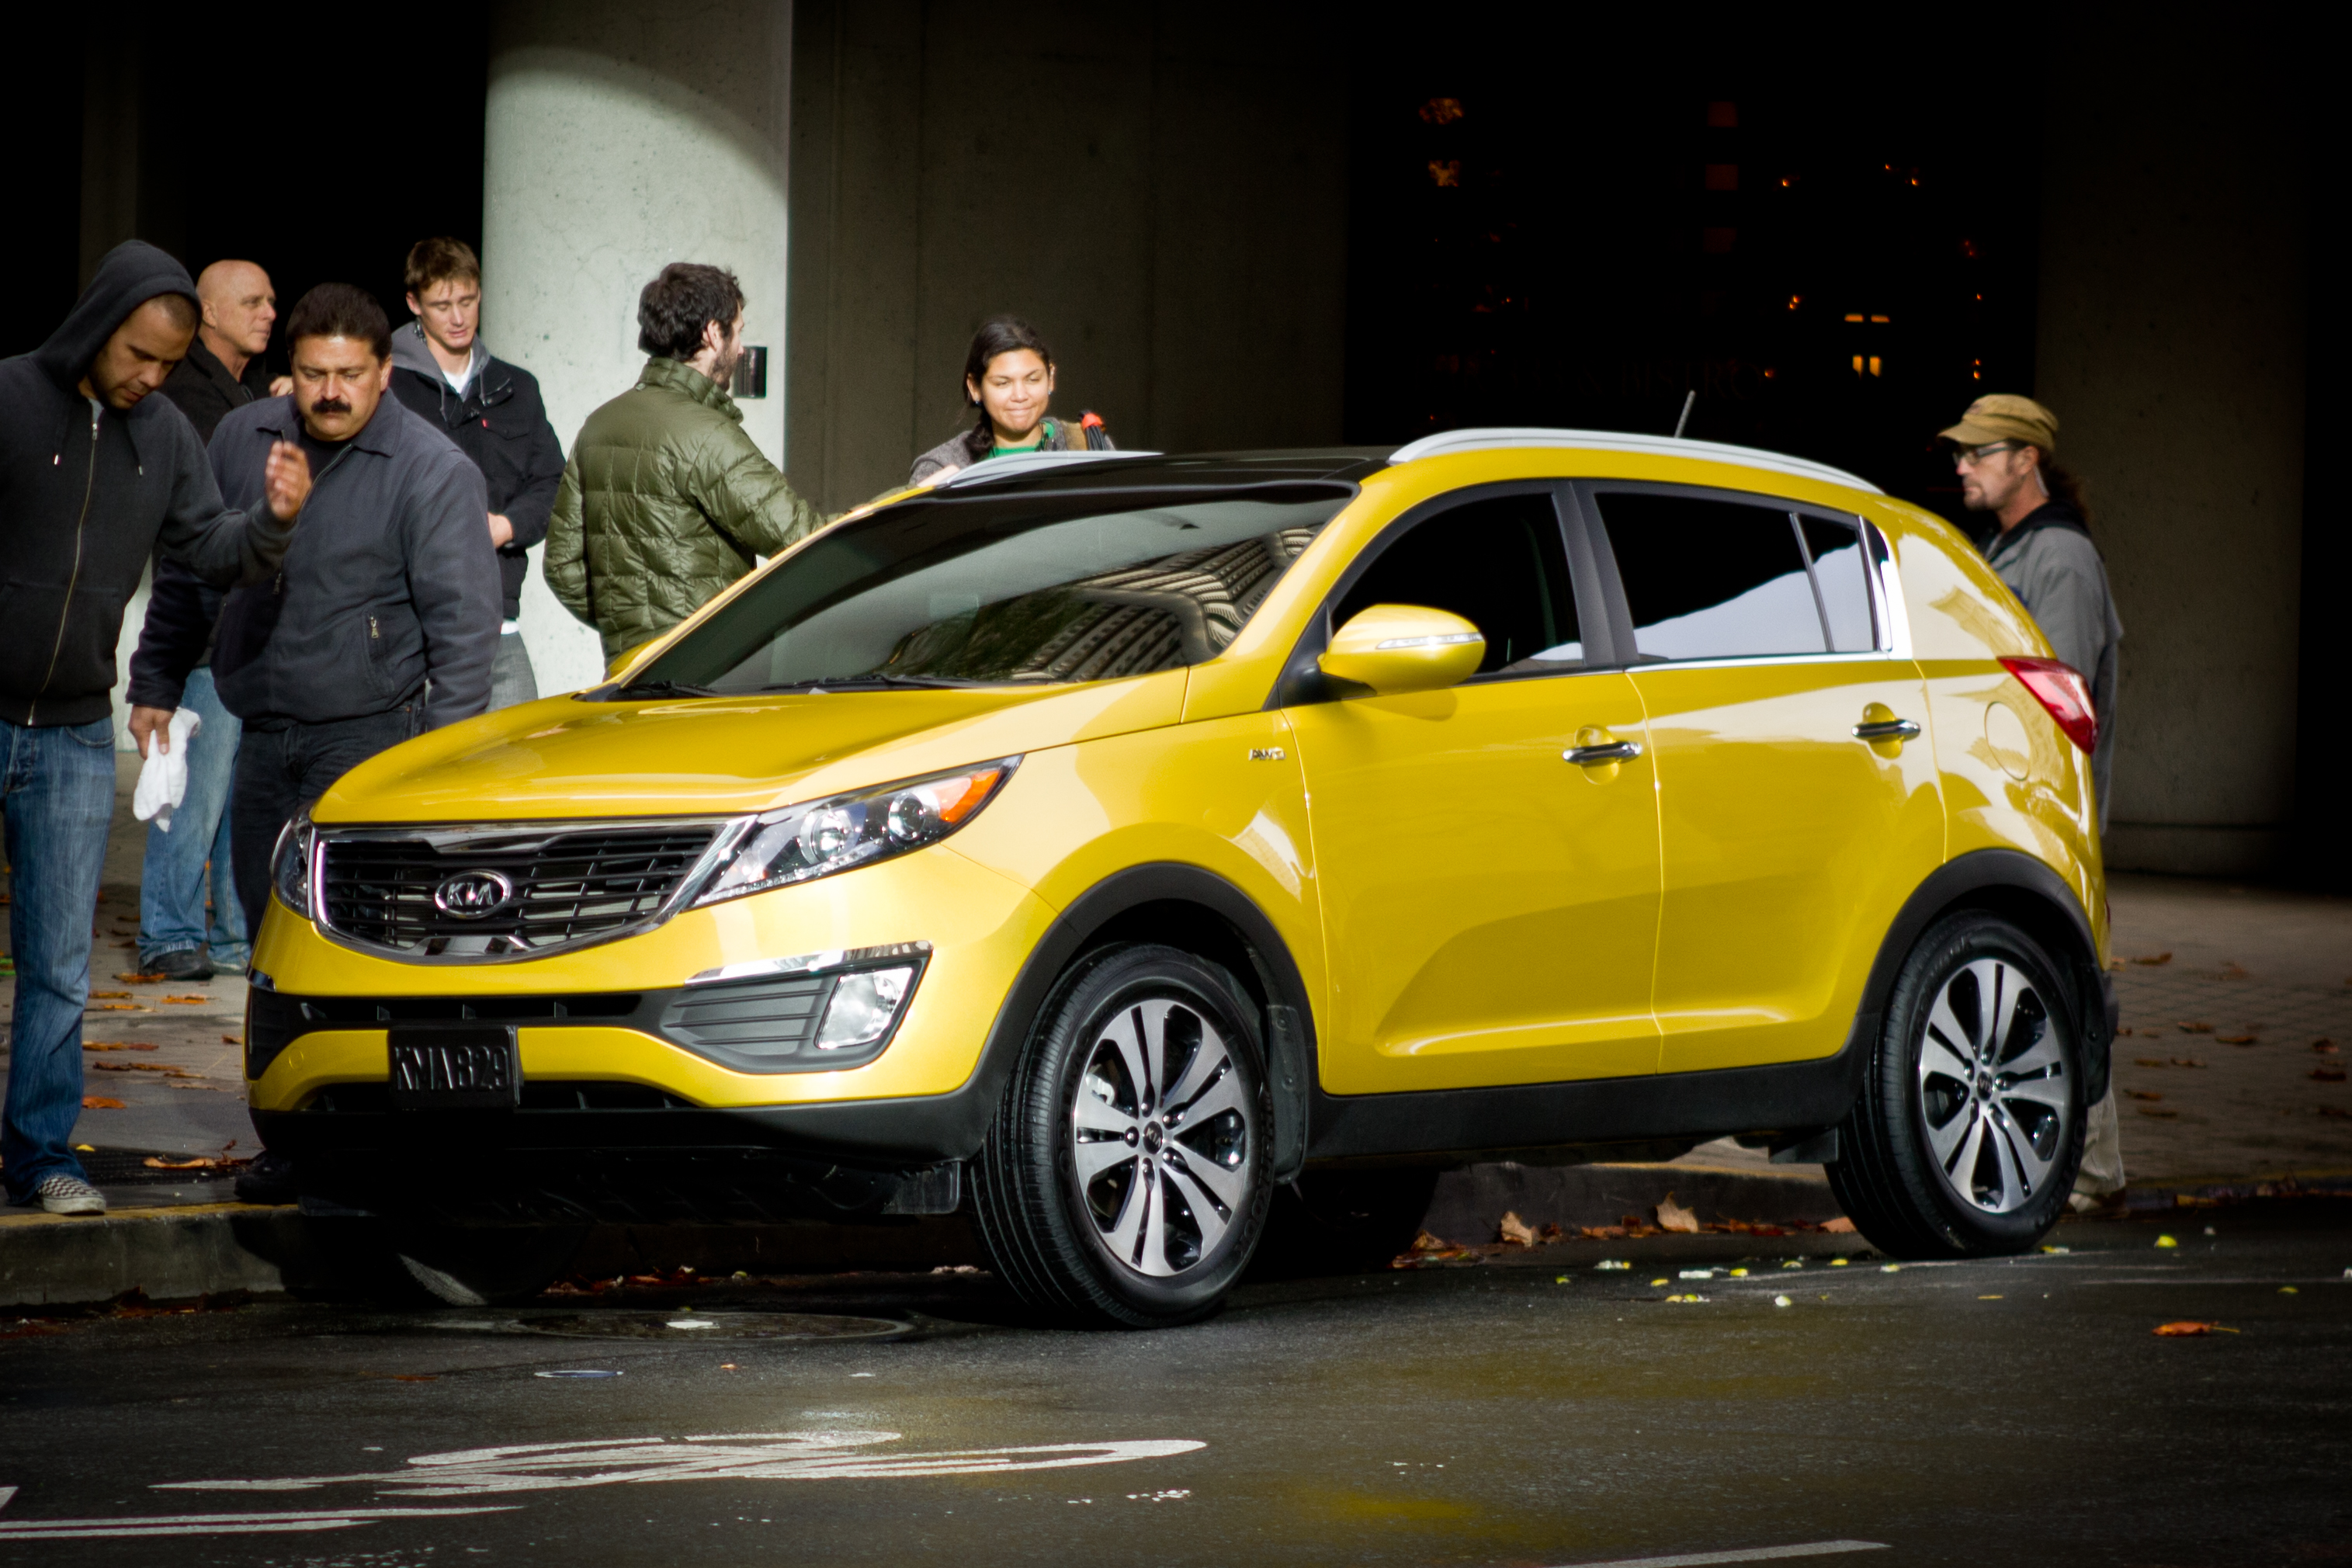 File Kia Sportage 2017 Yellow Commercial Shoot In San Francisco 2010 12 Jpg